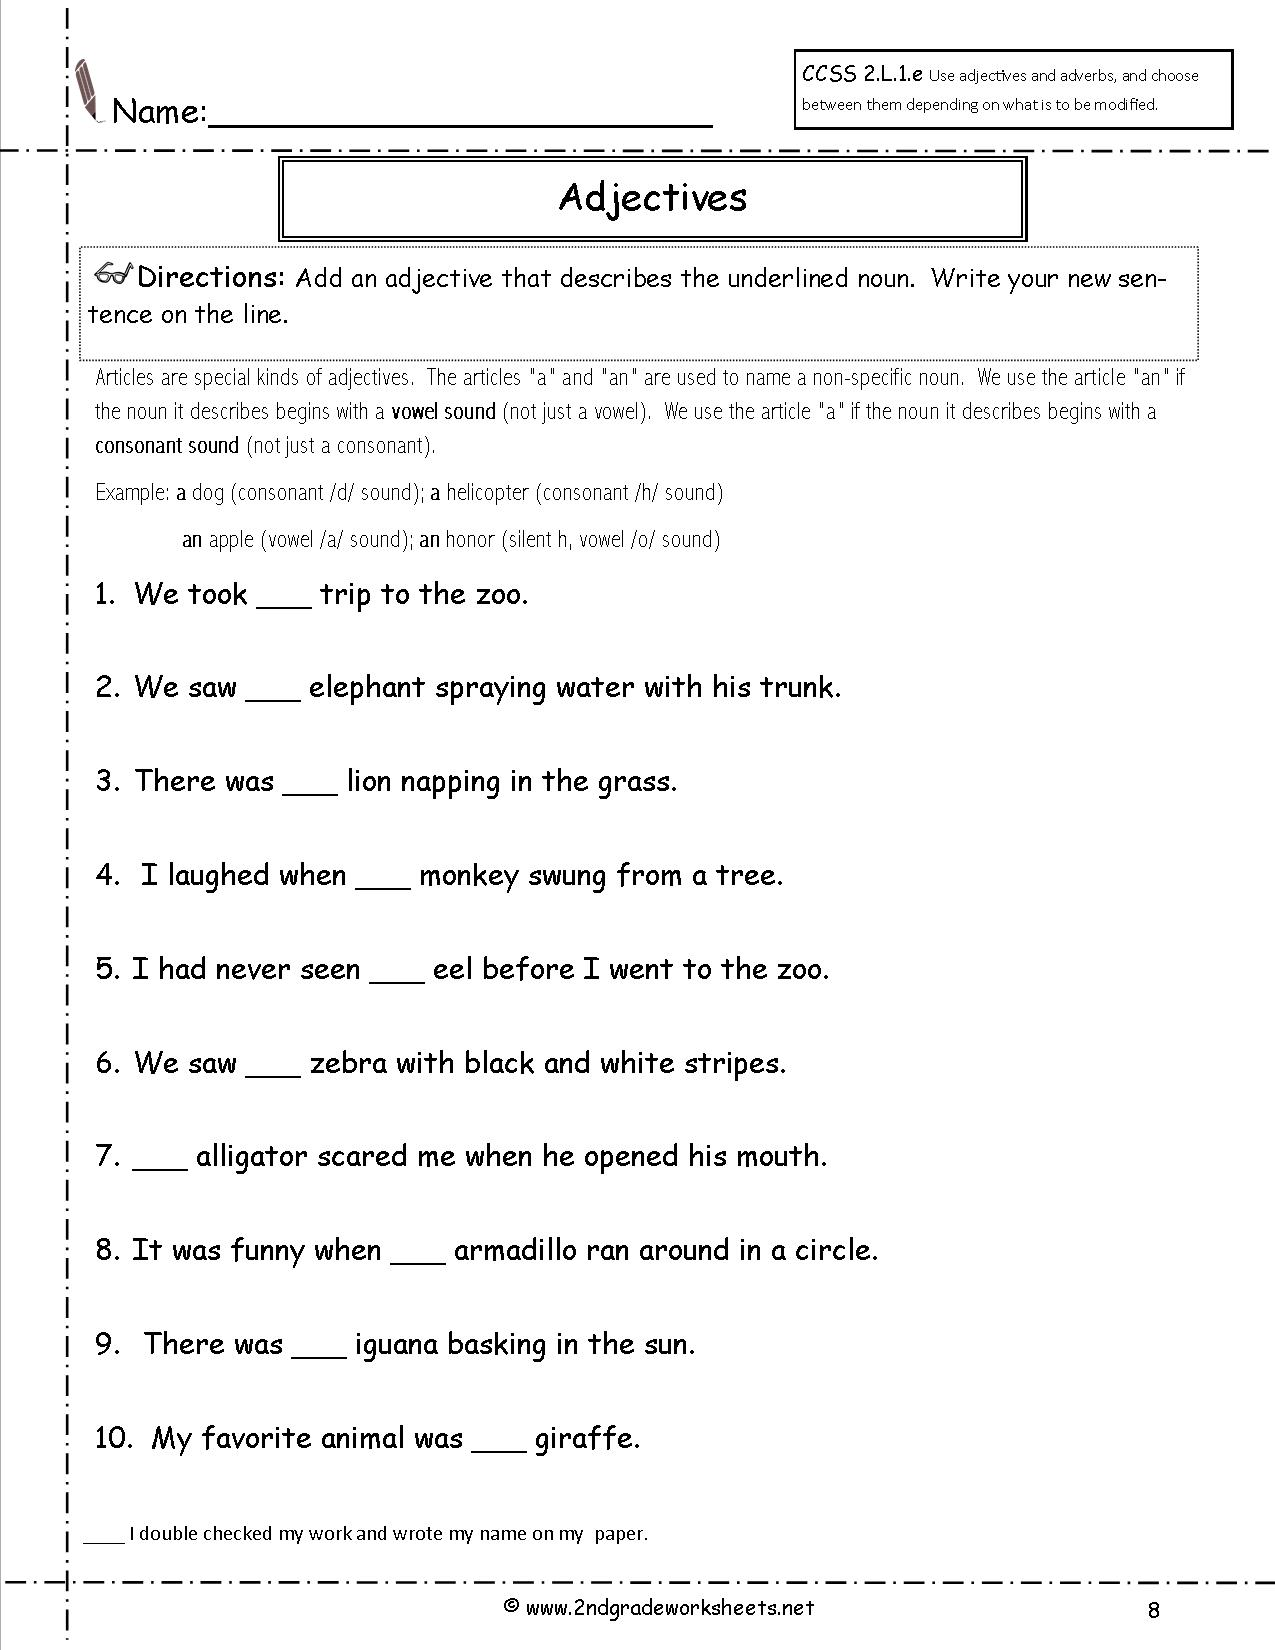 13 Best Images Of Printable Practice Writing Sentences